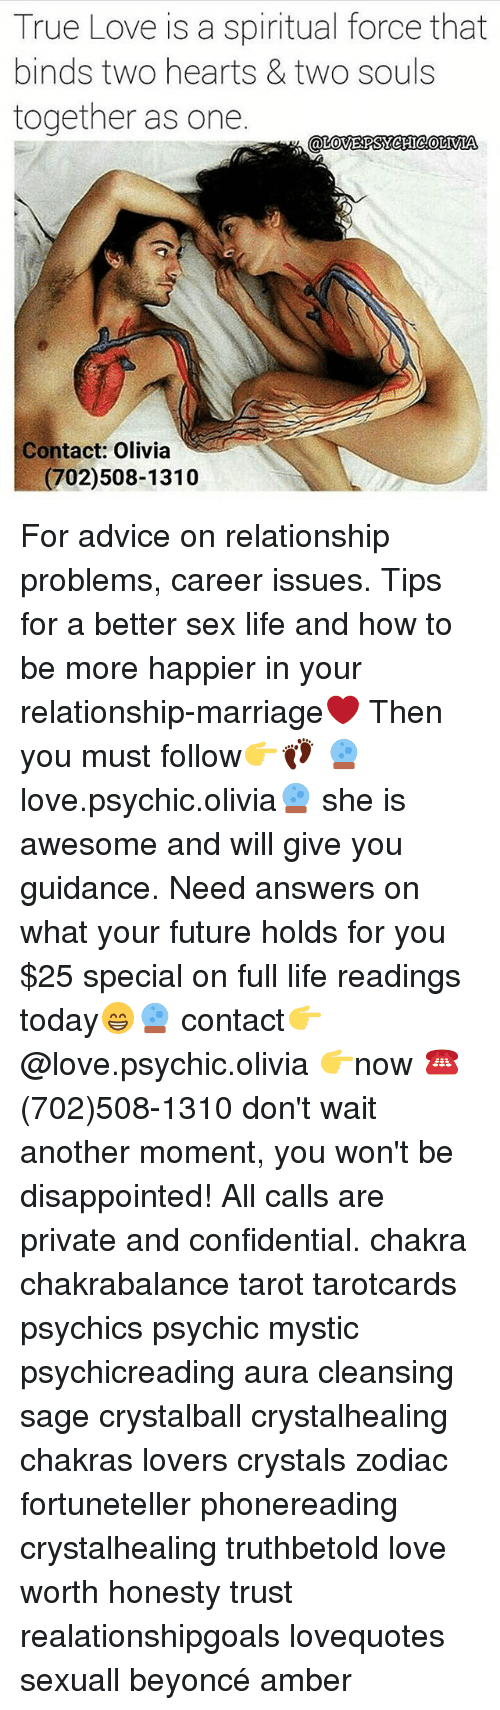 Advice, Beyonce, and Disappointed: True Love is a spiritual force that  binds two hearts & two souls  together as one  LOVERPSYCHICOLIVIA  Contact: Olivia  02)508-1310 For advice on relationship problems, career issues. Tips for a better sex life and how to be more happier in your relationship-marriage❤️ Then you must follow👉👣 🔮love.psychic.olivia🔮 she is awesome and will give you guidance. Need answers on what your future holds for you $25 special on full life readings today😁🔮 contact👉@love.psychic.olivia 👉now ☎ (702)508-1310 don't wait another moment, you won't be disappointed! All calls are private and confidential. chakra chakrabalance tarot tarotcards psychics psychic mystic psychicreading aura cleansing sage crystalball crystalhealing chakras lovers crystals zodiac fortuneteller phonereading crystalhealing truthbetold love worth honesty trust realationshipgoals lovequotes sexuall beyoncé amber